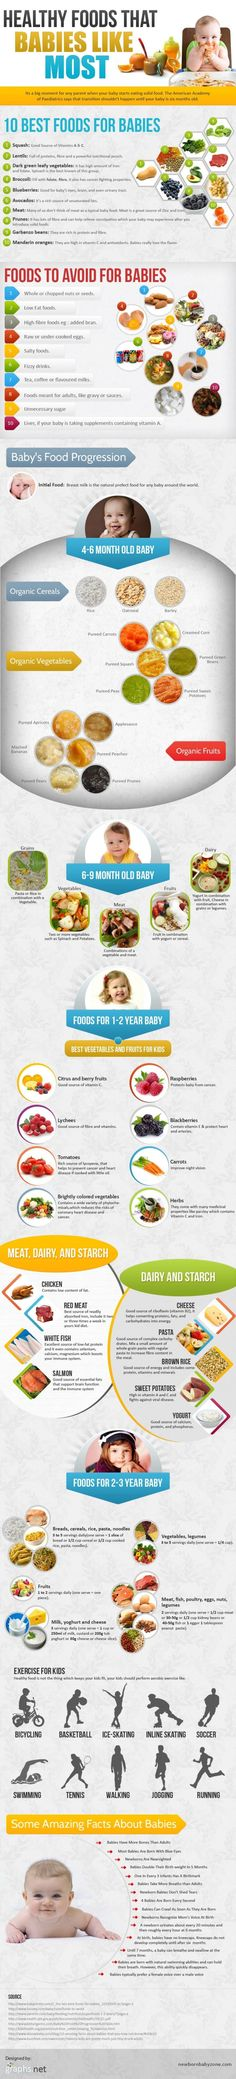 Via New Born Baby Zone, a website dedicated to all things baby.